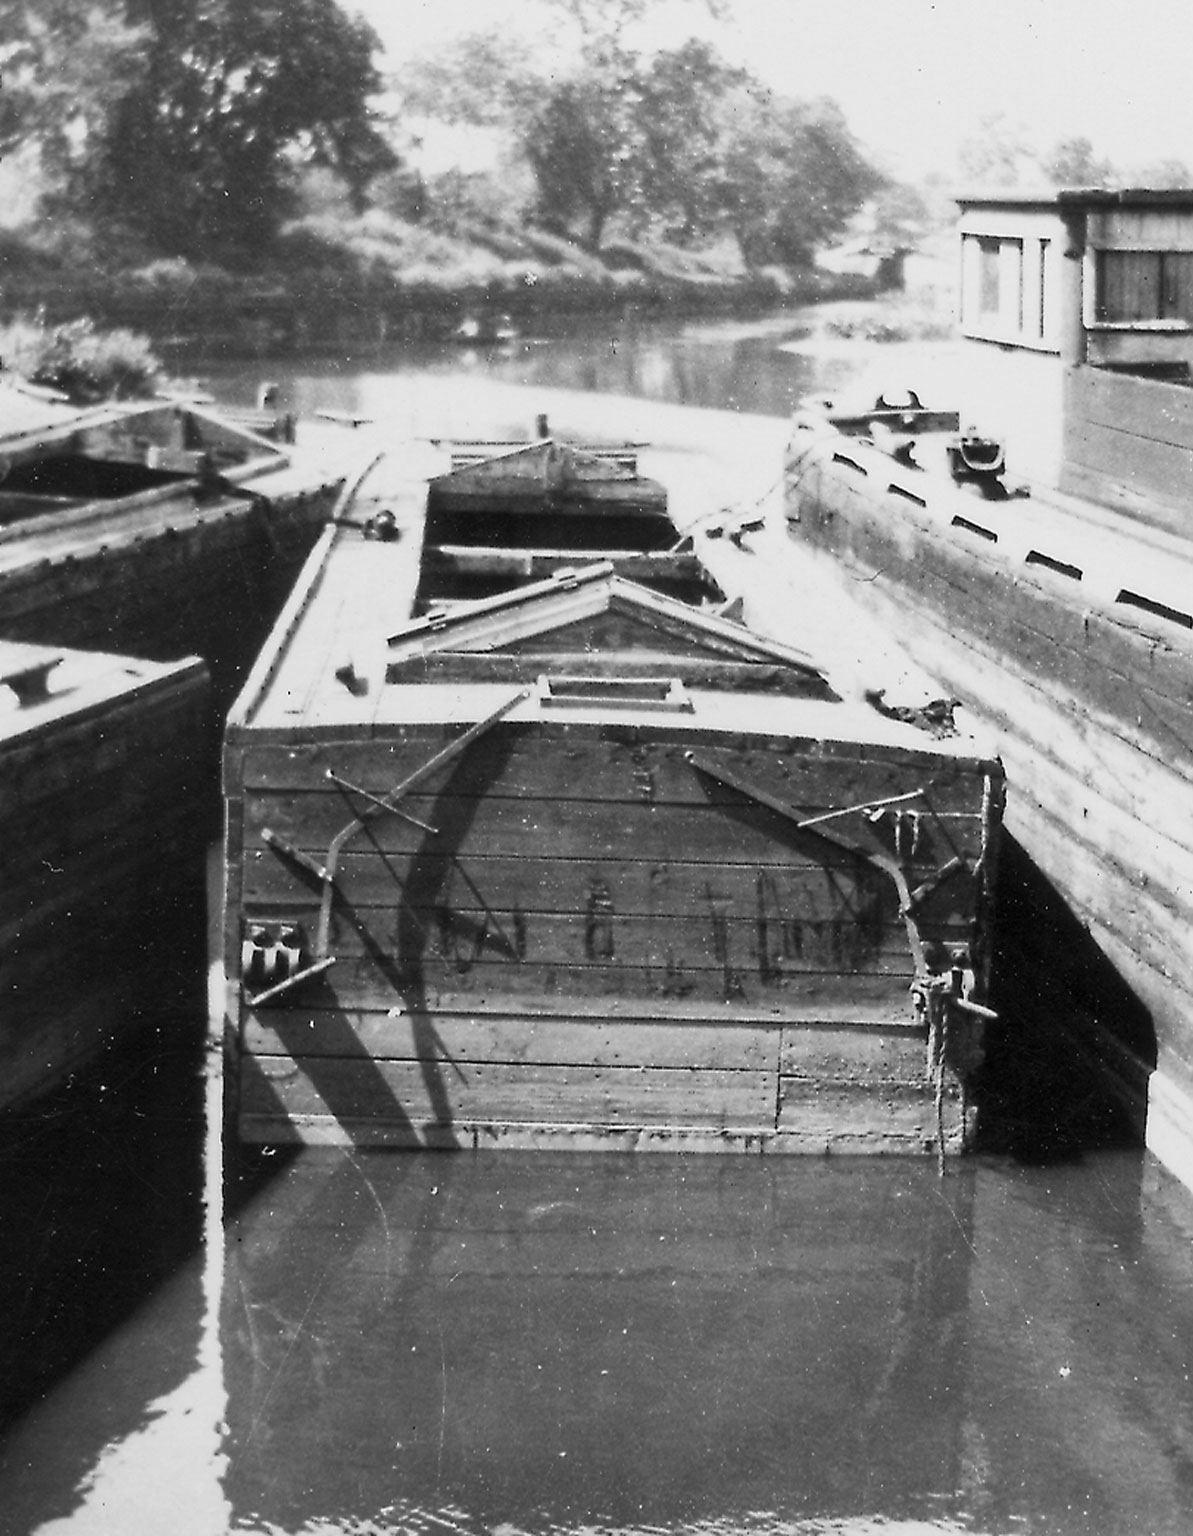 This view of a deck shows you what a deck looked like when the hatches were open revealing the coal being stored below.